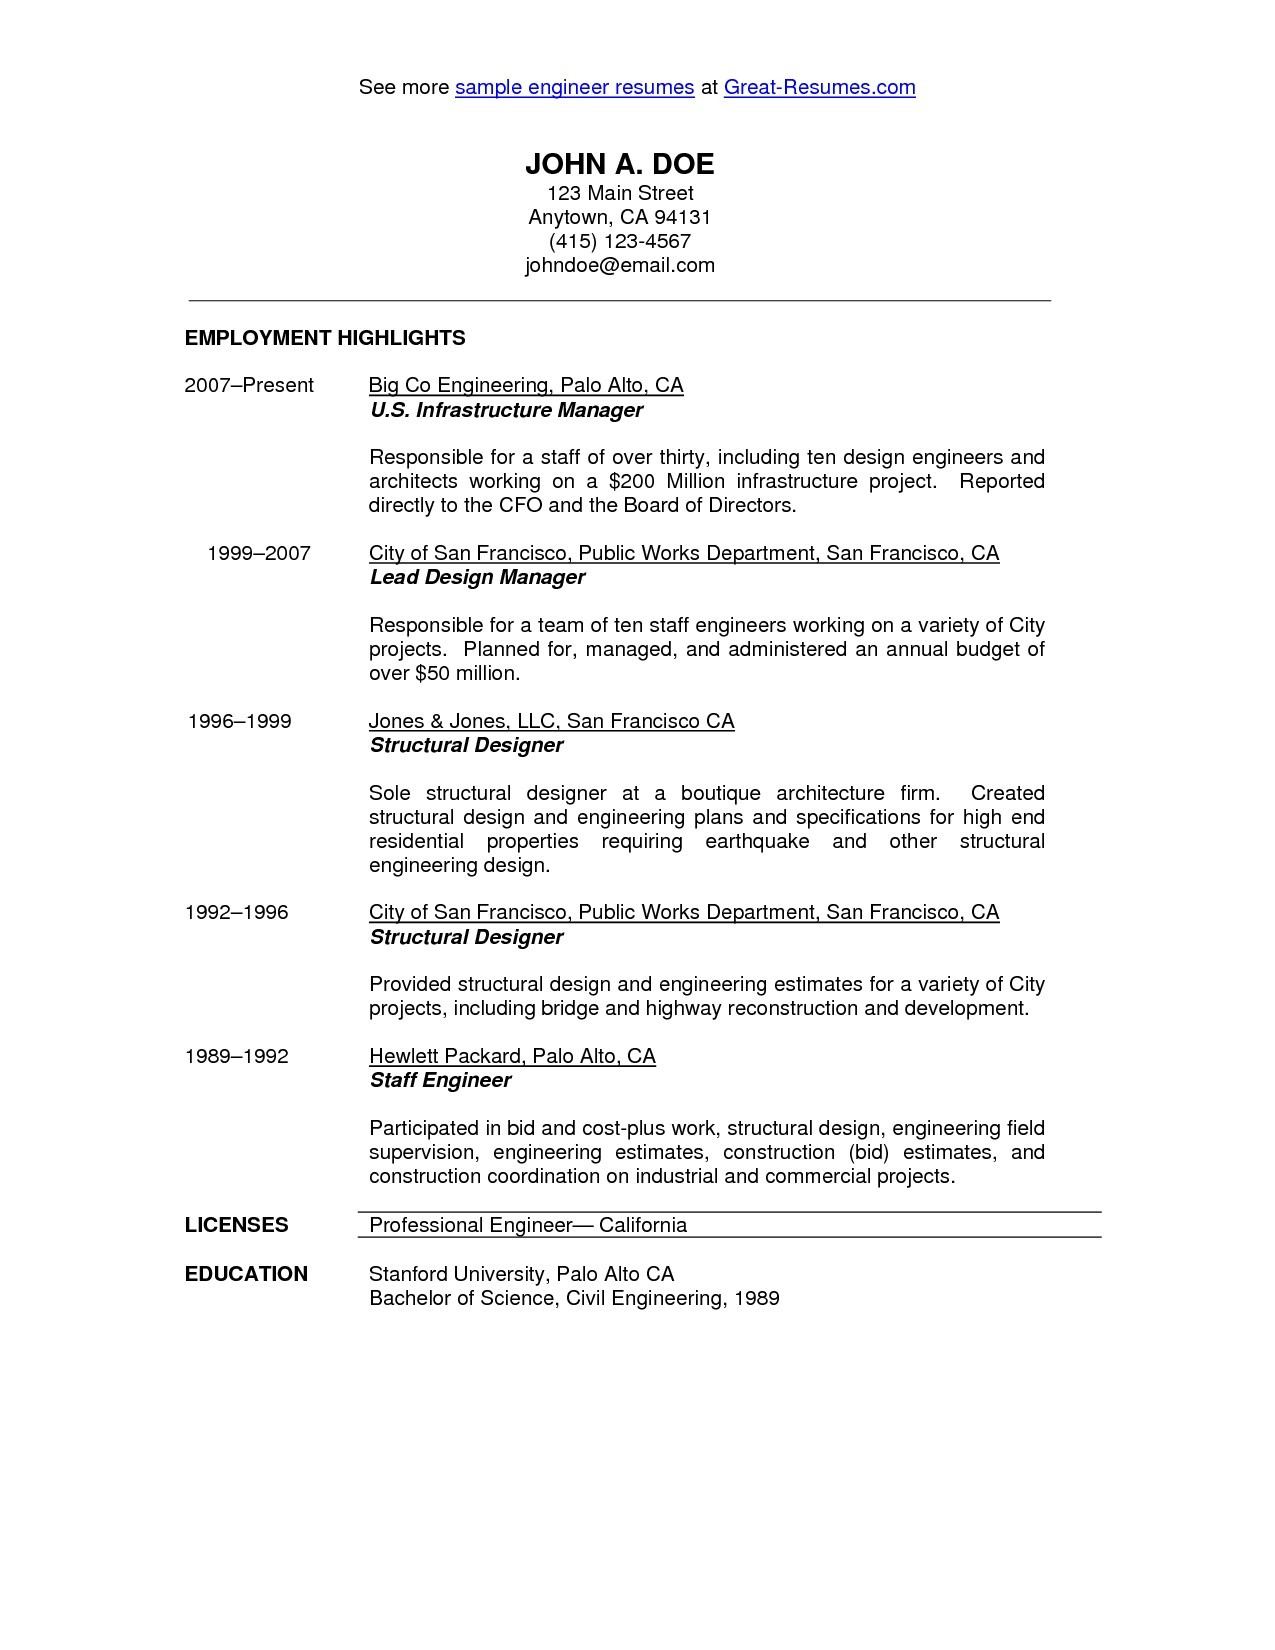 Resume for Entry Level Electrical Engineer - Electrical Engineering Co Refrence 19 Entry Level Electrical